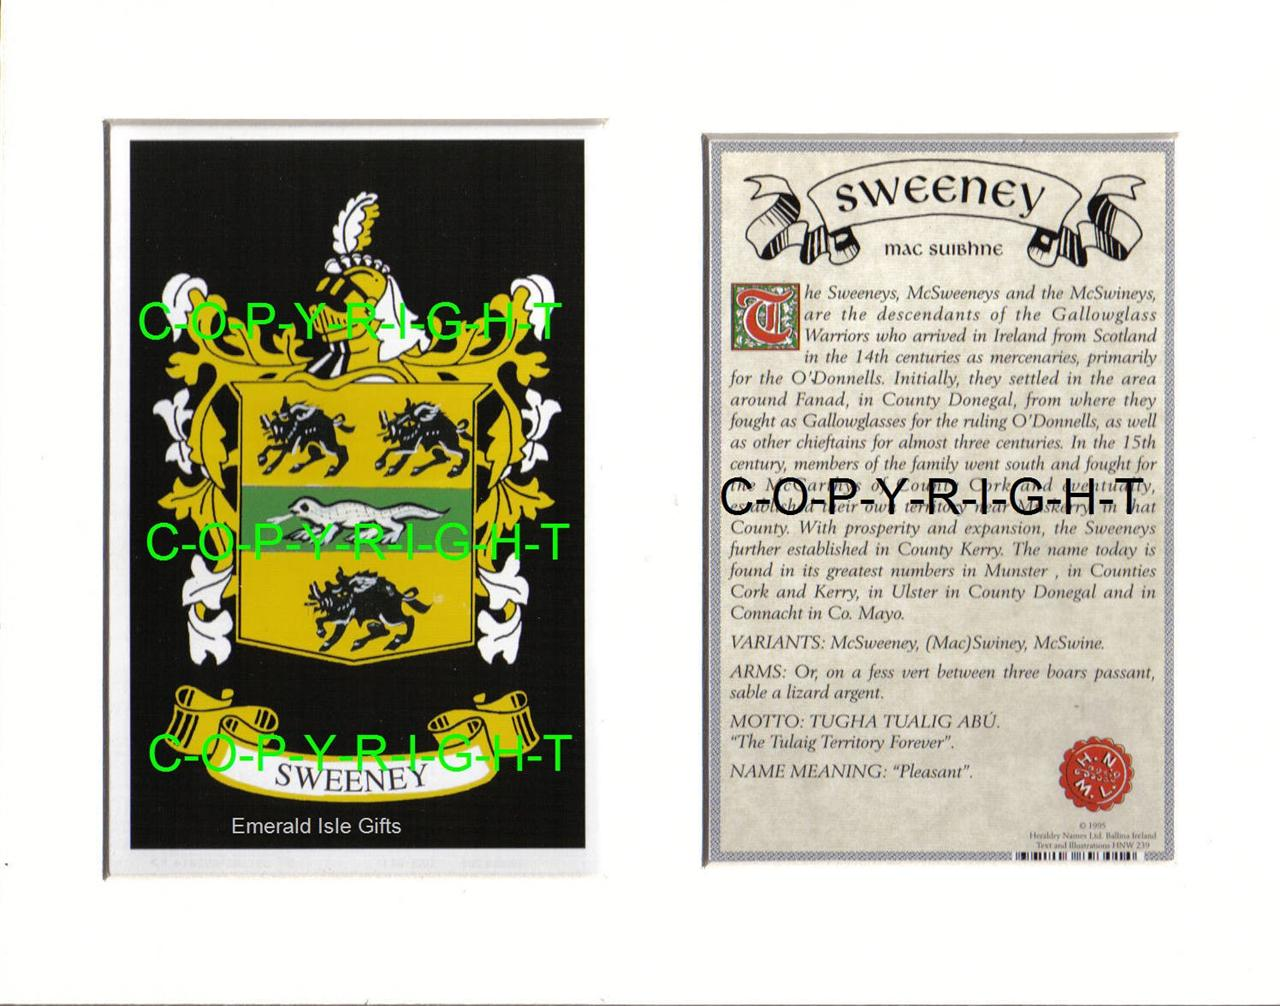 SWEENEY-Family-Coat-of-Arms-Crest-History-Available-Mounted-or-Framed